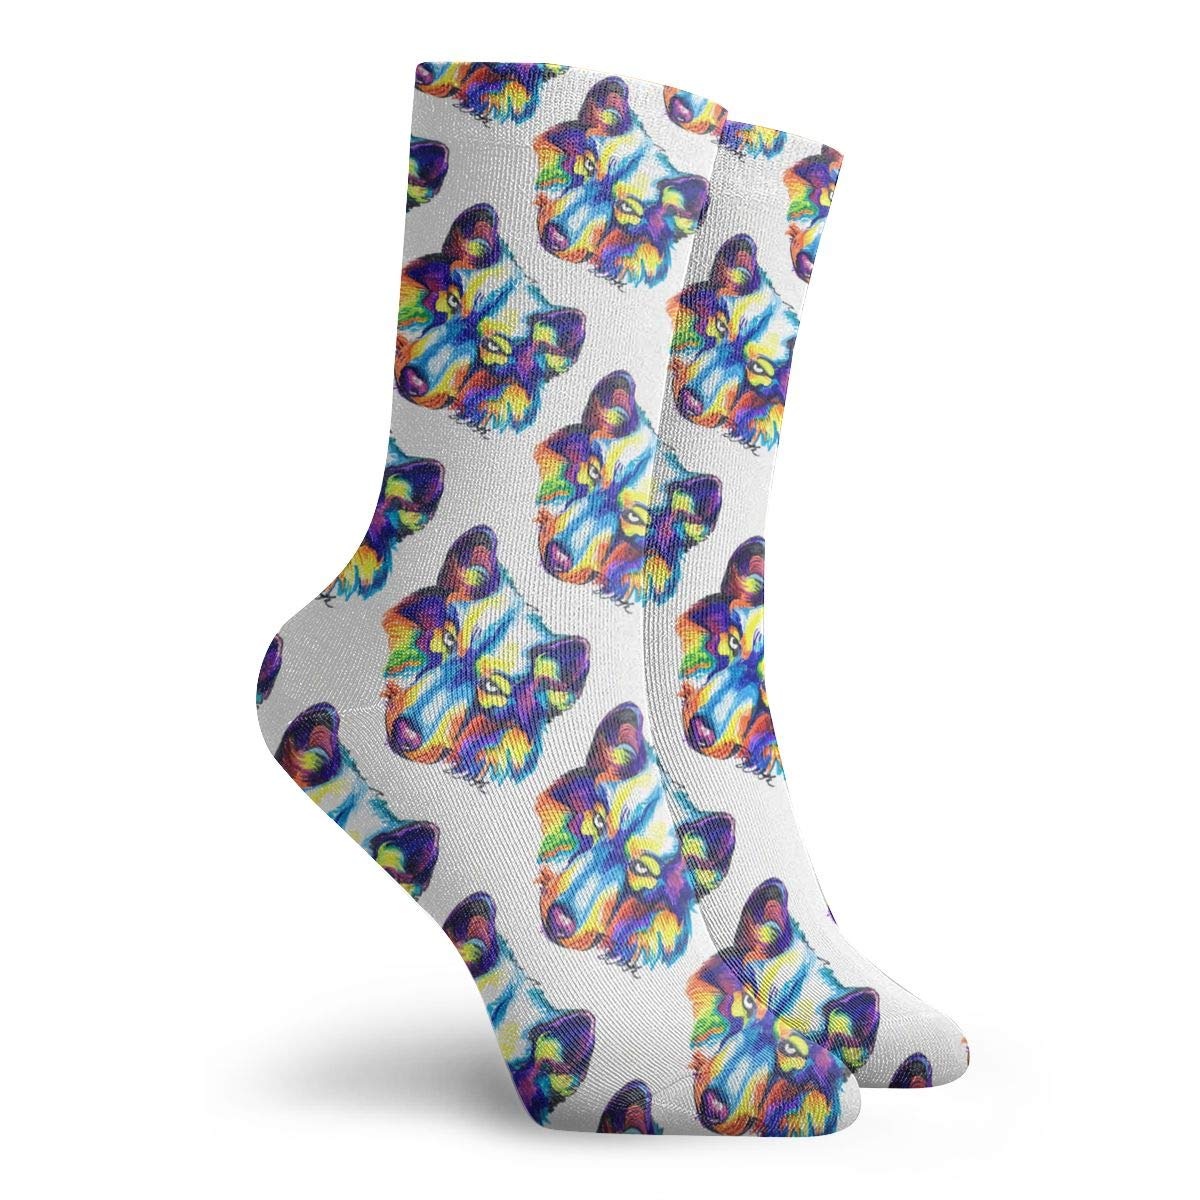 YIEOFH Rainbow Wolves Cool Novelty Boys Girls Fashion Cute Funny Casual Art Crew Socks